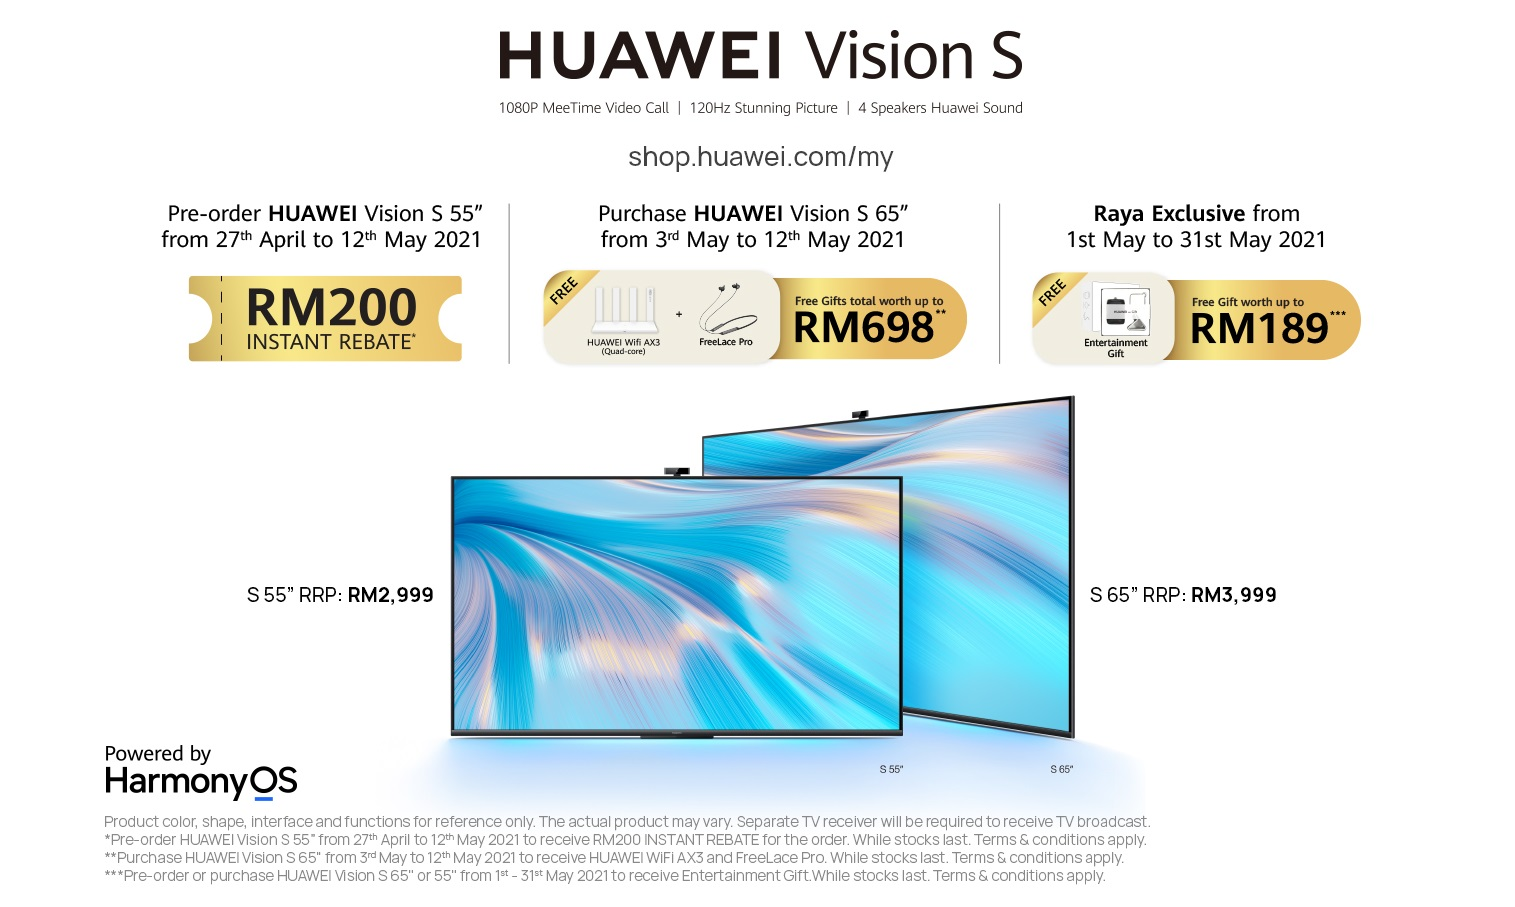 Entice Yourself with the Possibilities of HUAWEI MeeTime with HUAWEI Vision S